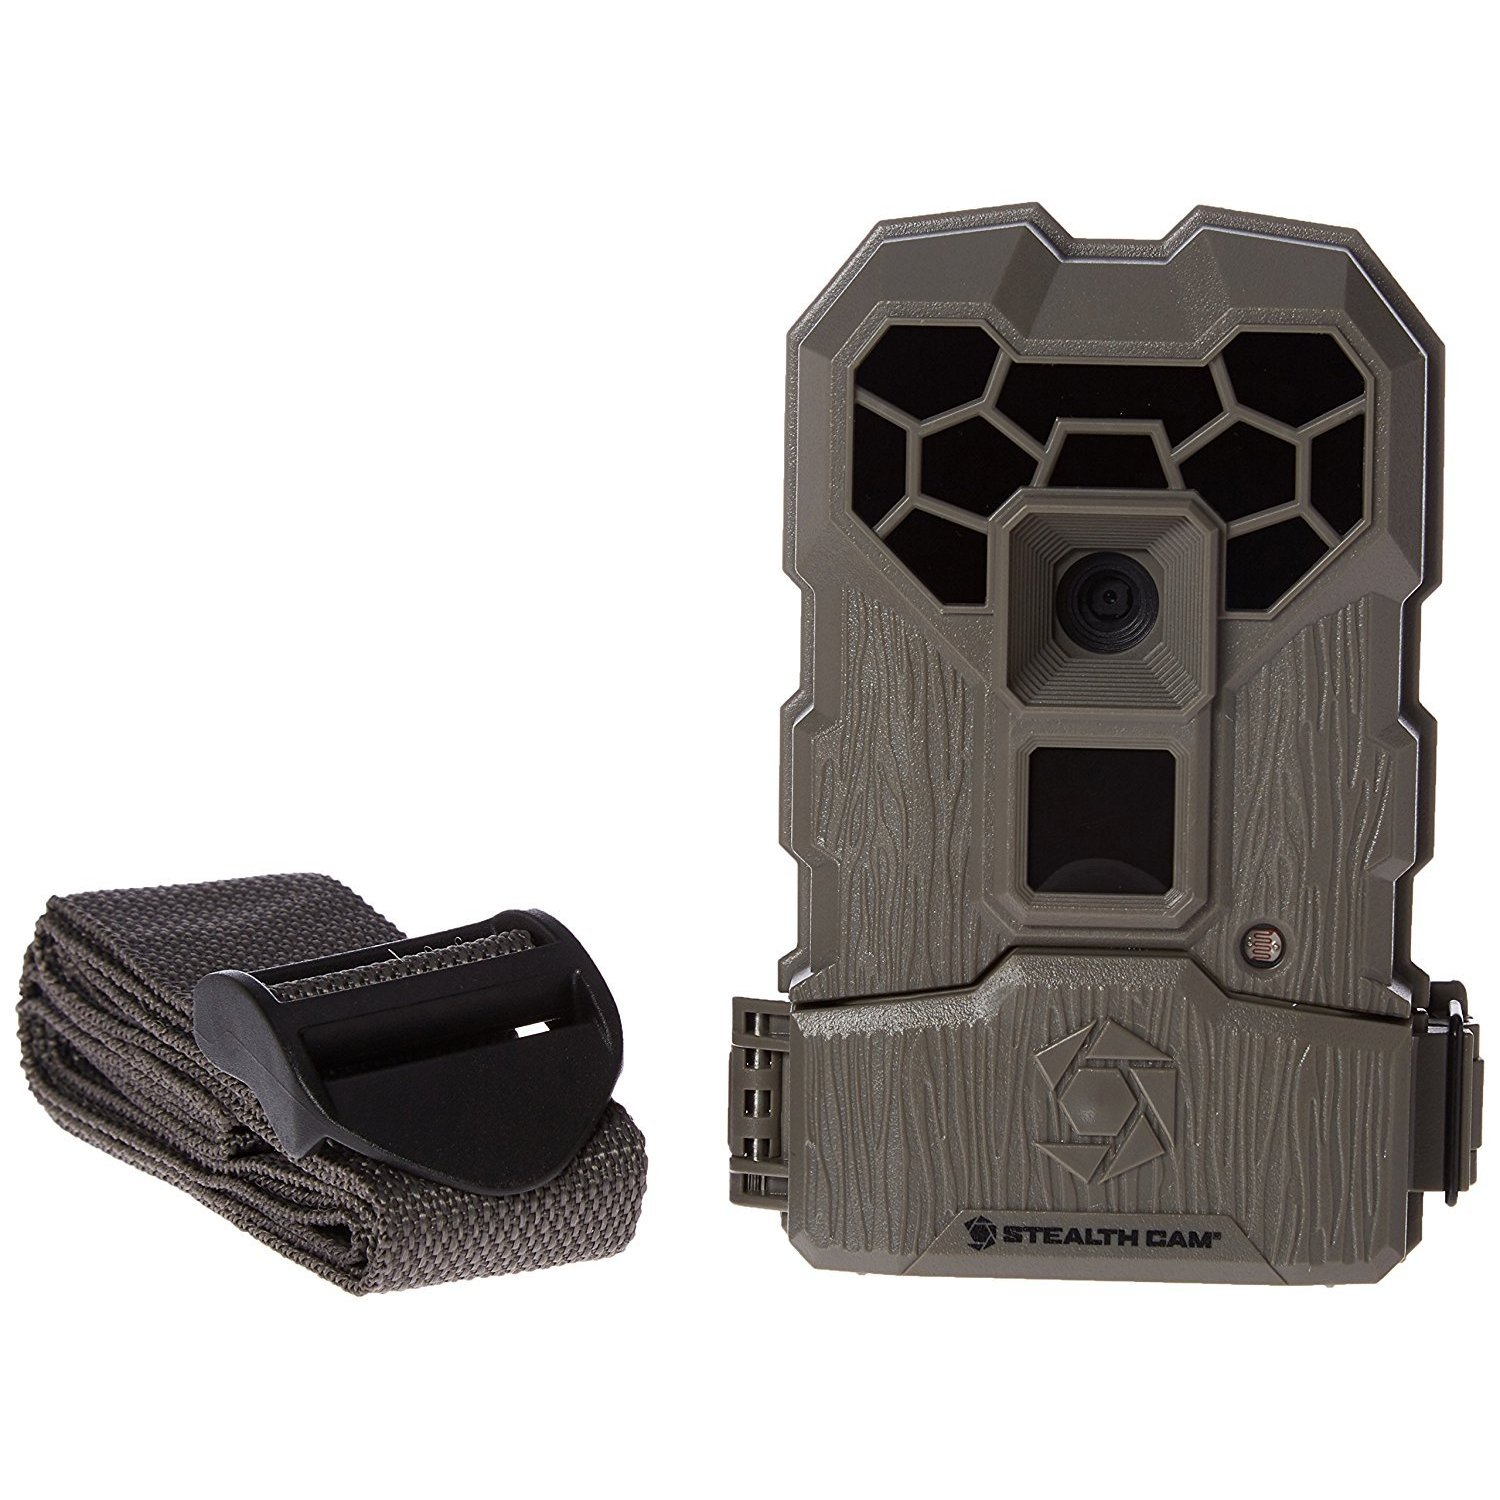 By-Stealth Cam Trail Camera Recorder, 10mp Wireless Hunting Camera Trail Game